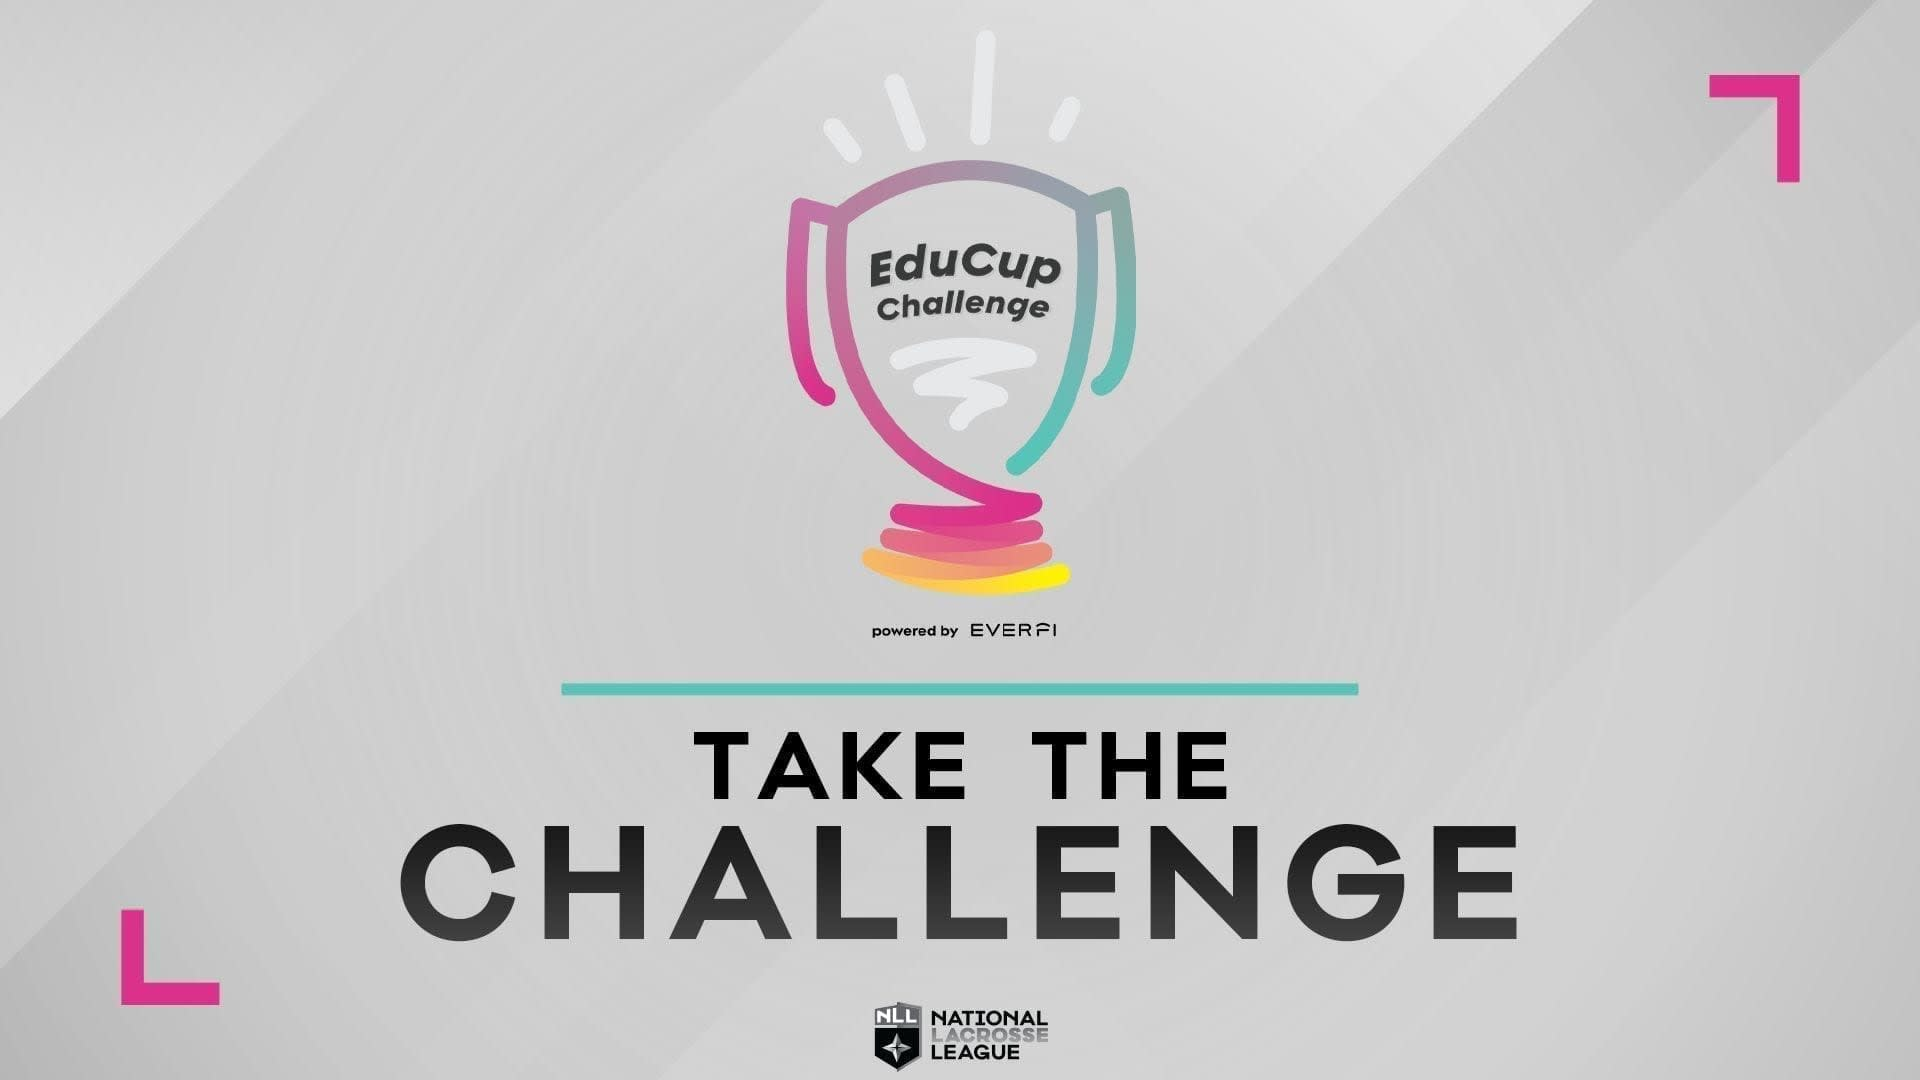 EVERFI Launches EduCup Challenge with NLL, NFL, NHL, MLS, MLB, Premier League and United Way Worldwide